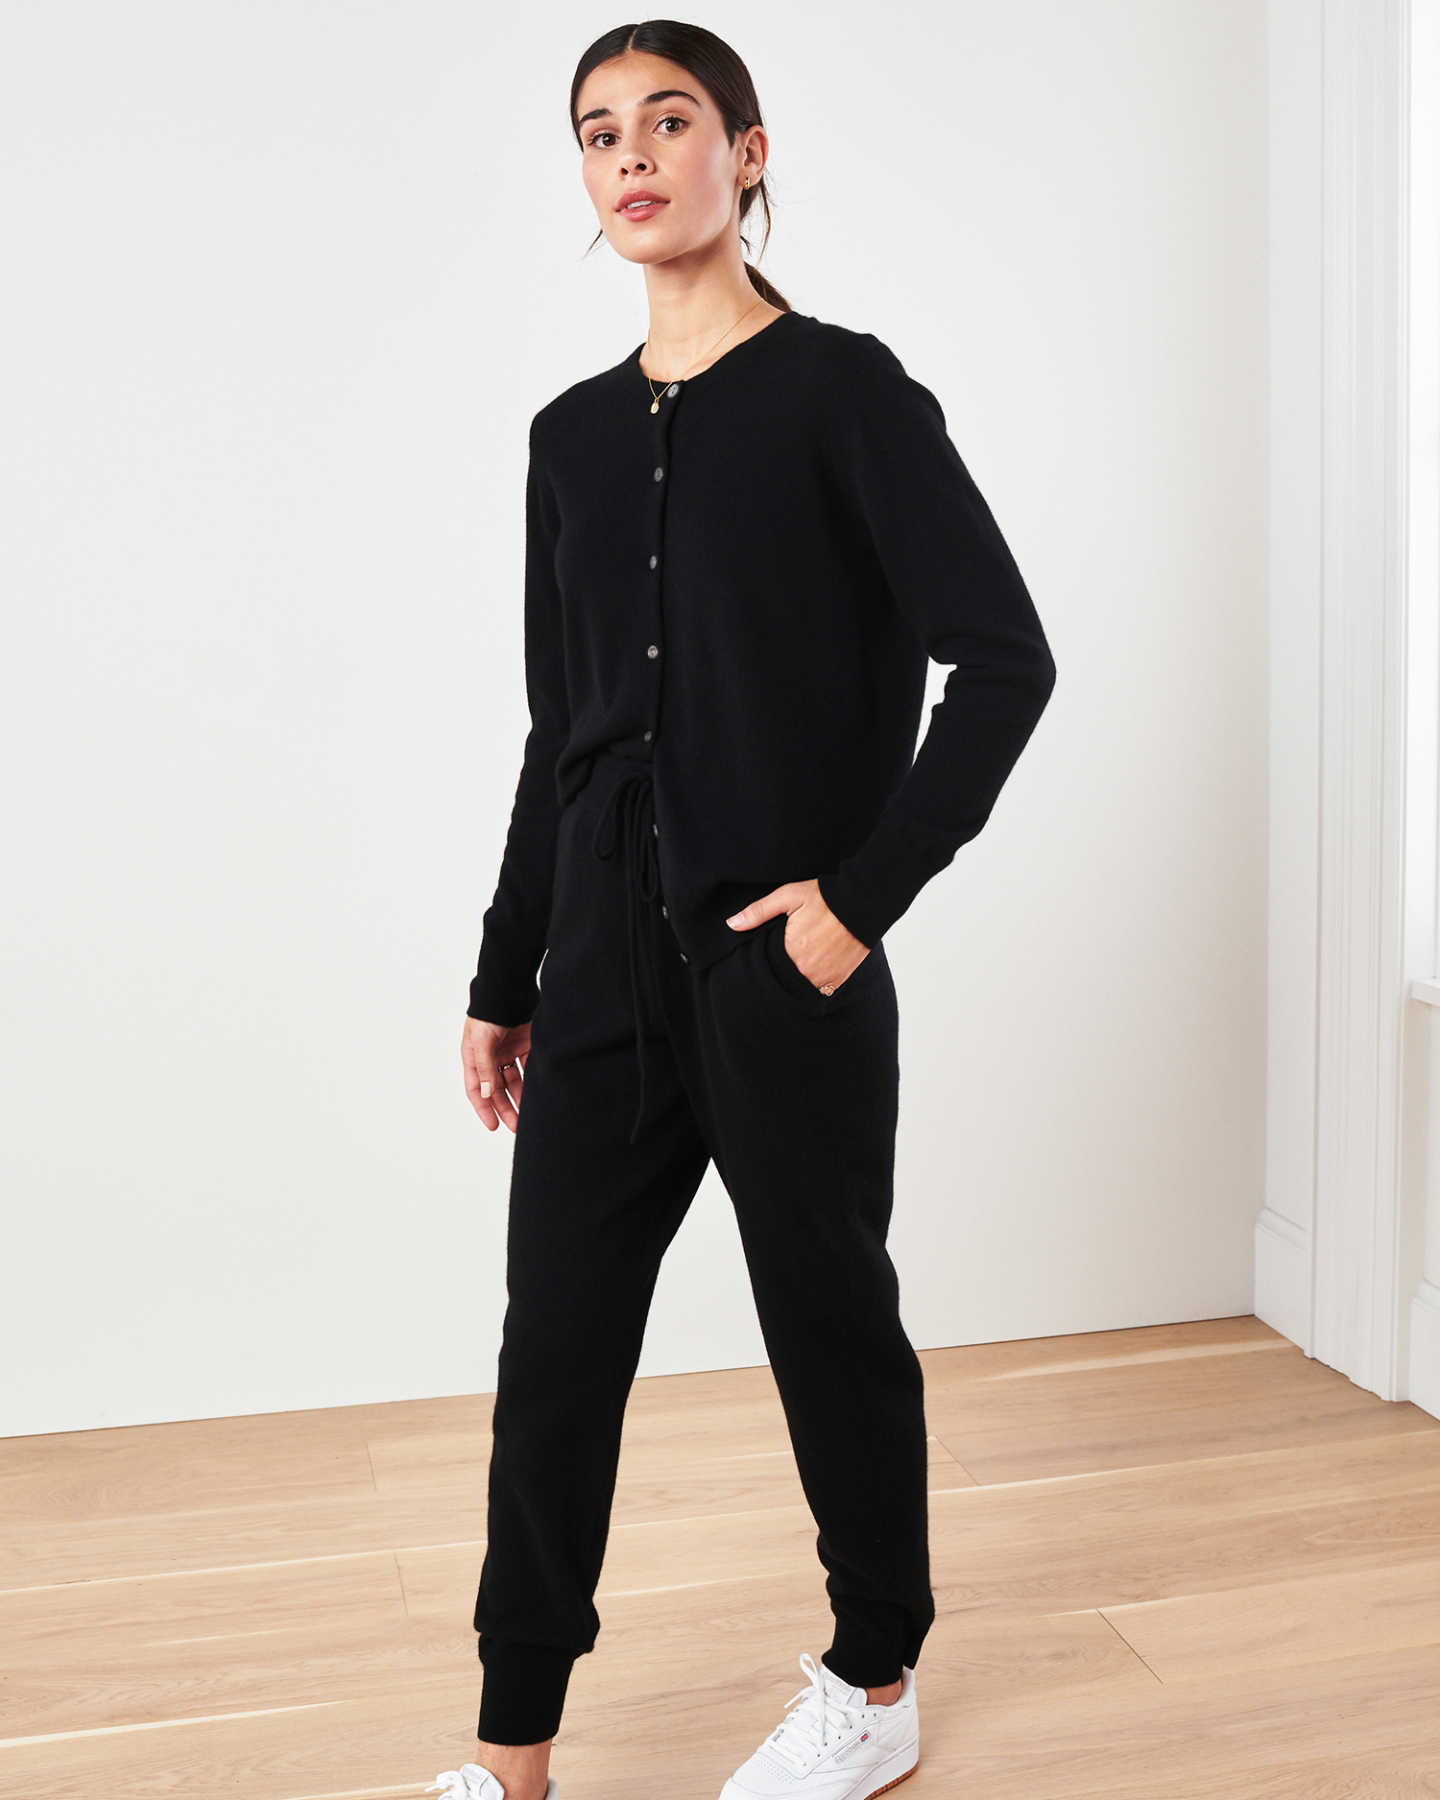 Woman wearing black cashmere cardigan sweater and black cashmere sweatpants walking